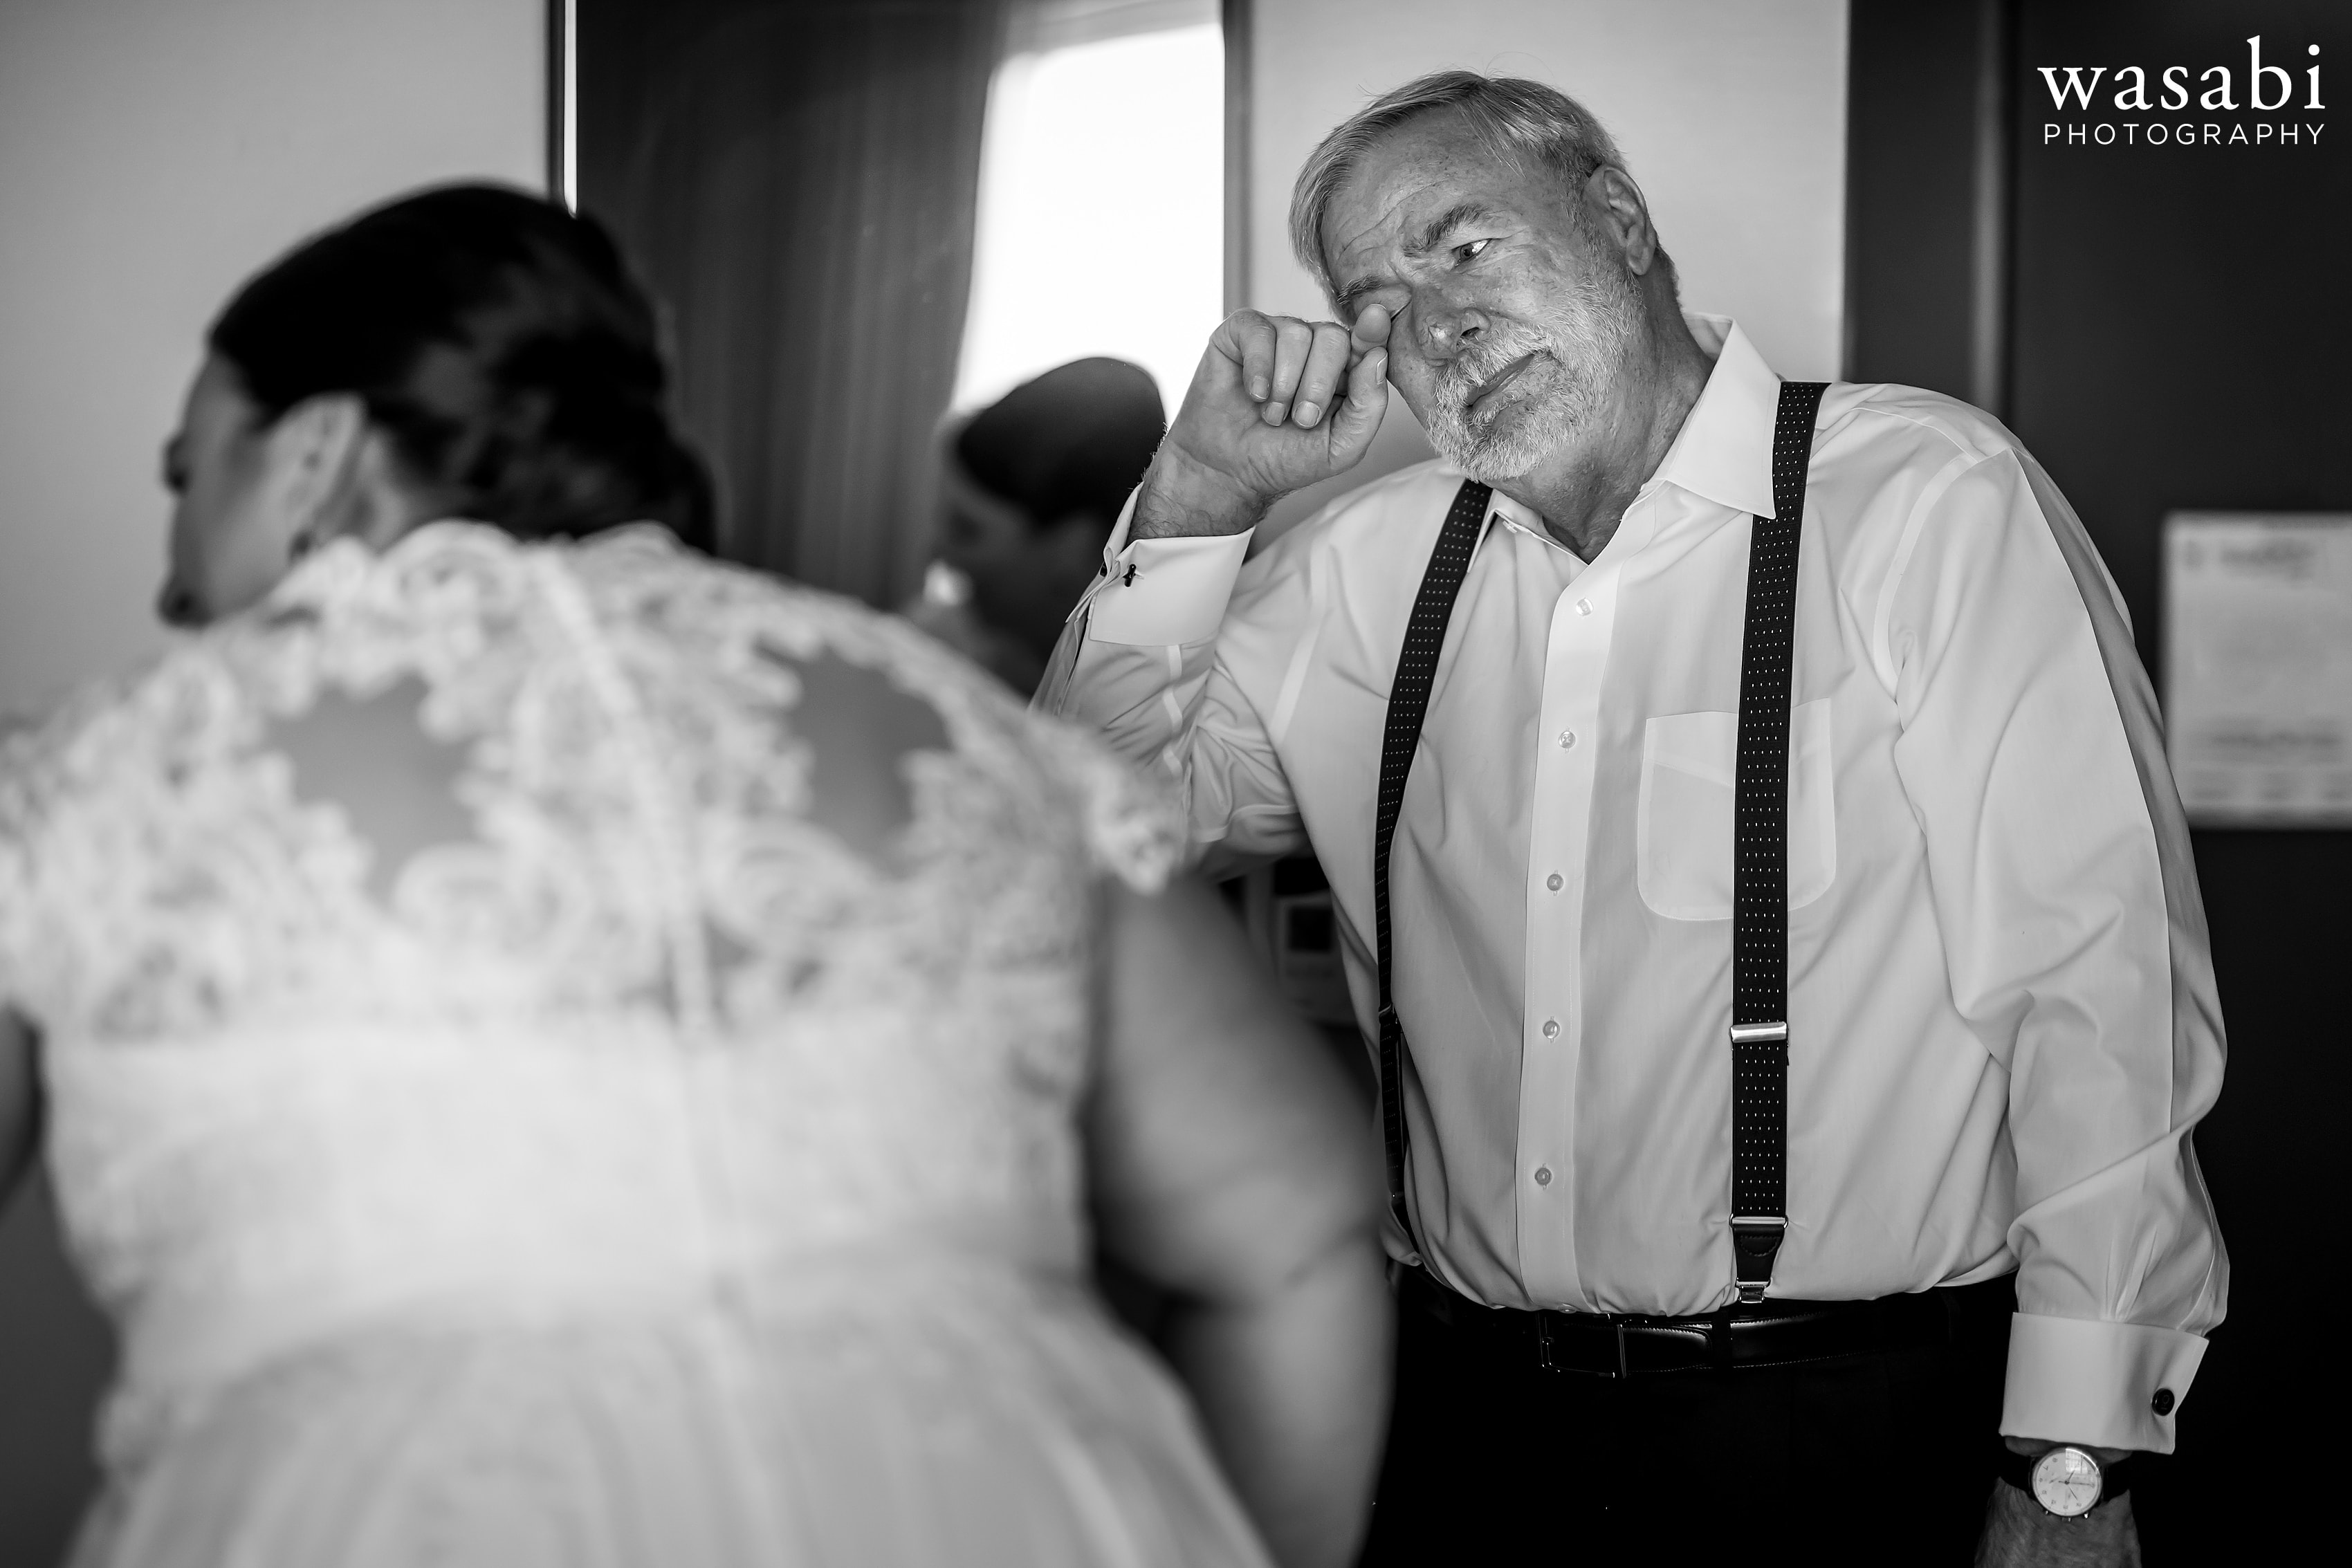 father of bride reacts to seeing bride in her wedding dress for the first time